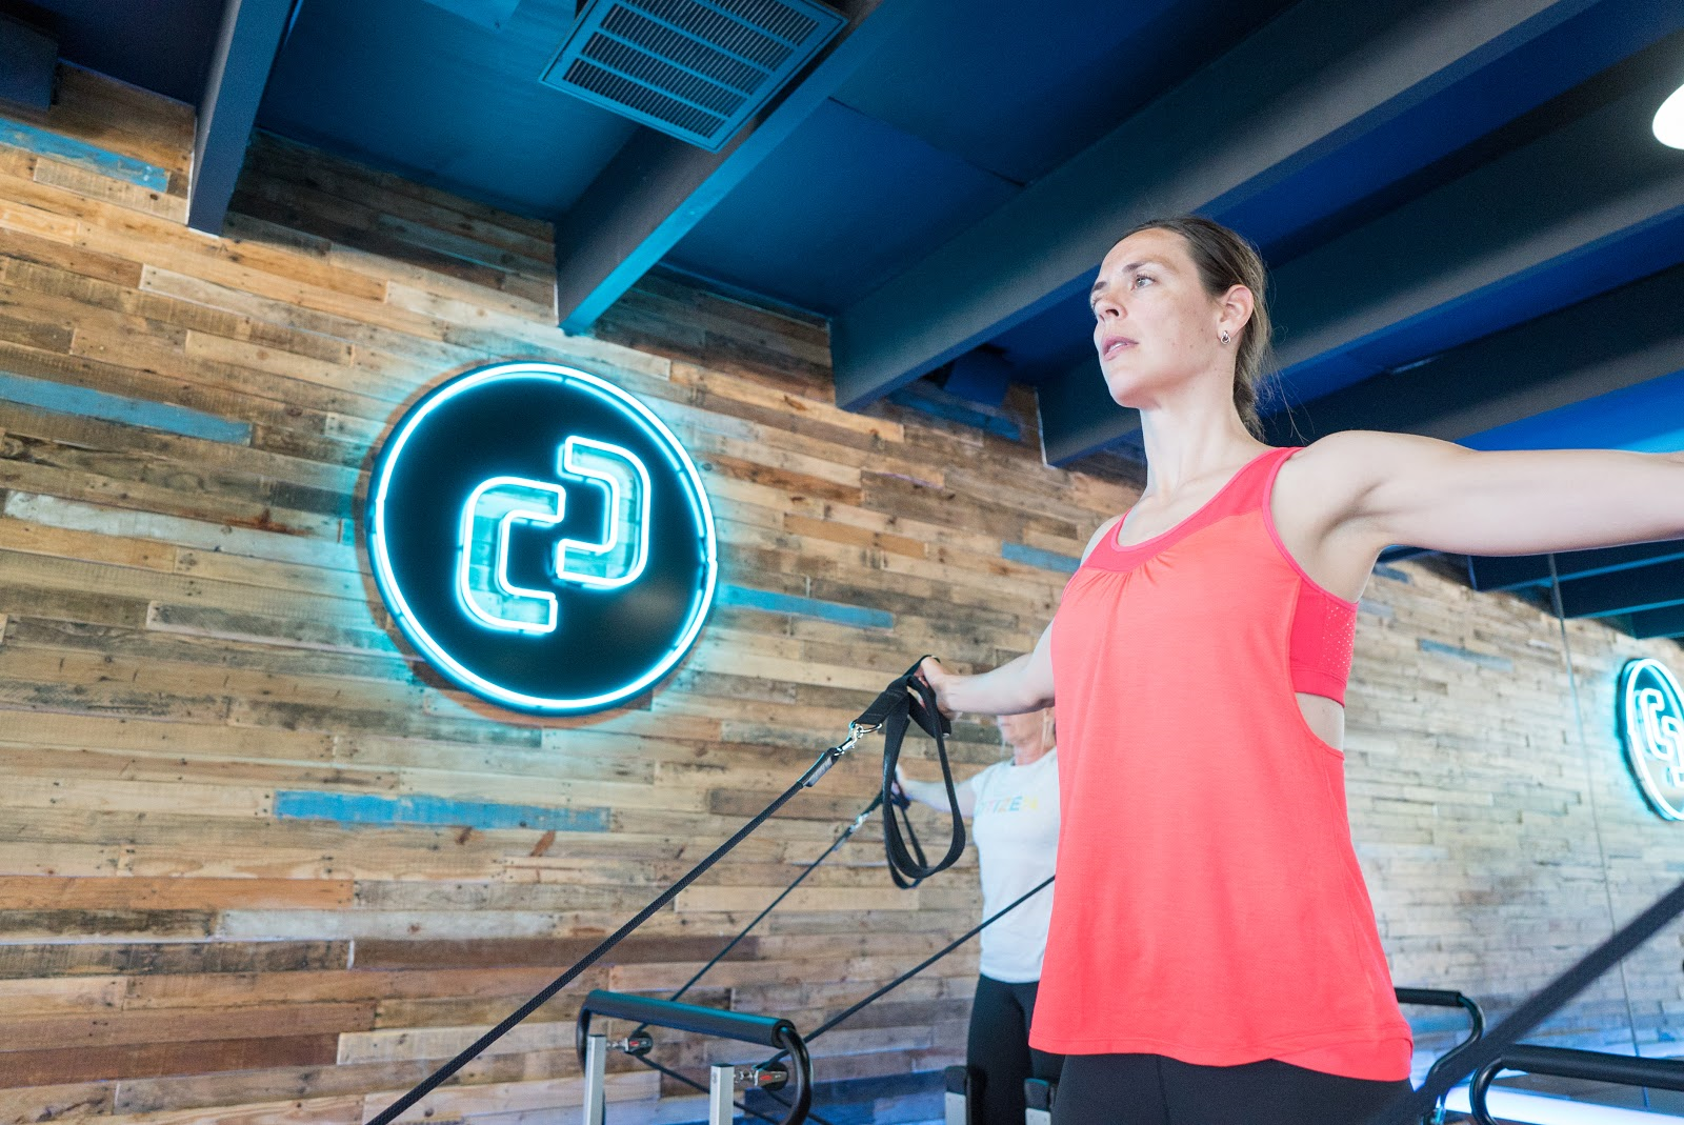 $10 Community Class - Our community classes give our instructors in training a chance to get real feedback from our clients. This is an intermediate, 45-minute Reformer Fitness class with all the fun and positivity you've come to expect at Citizen!